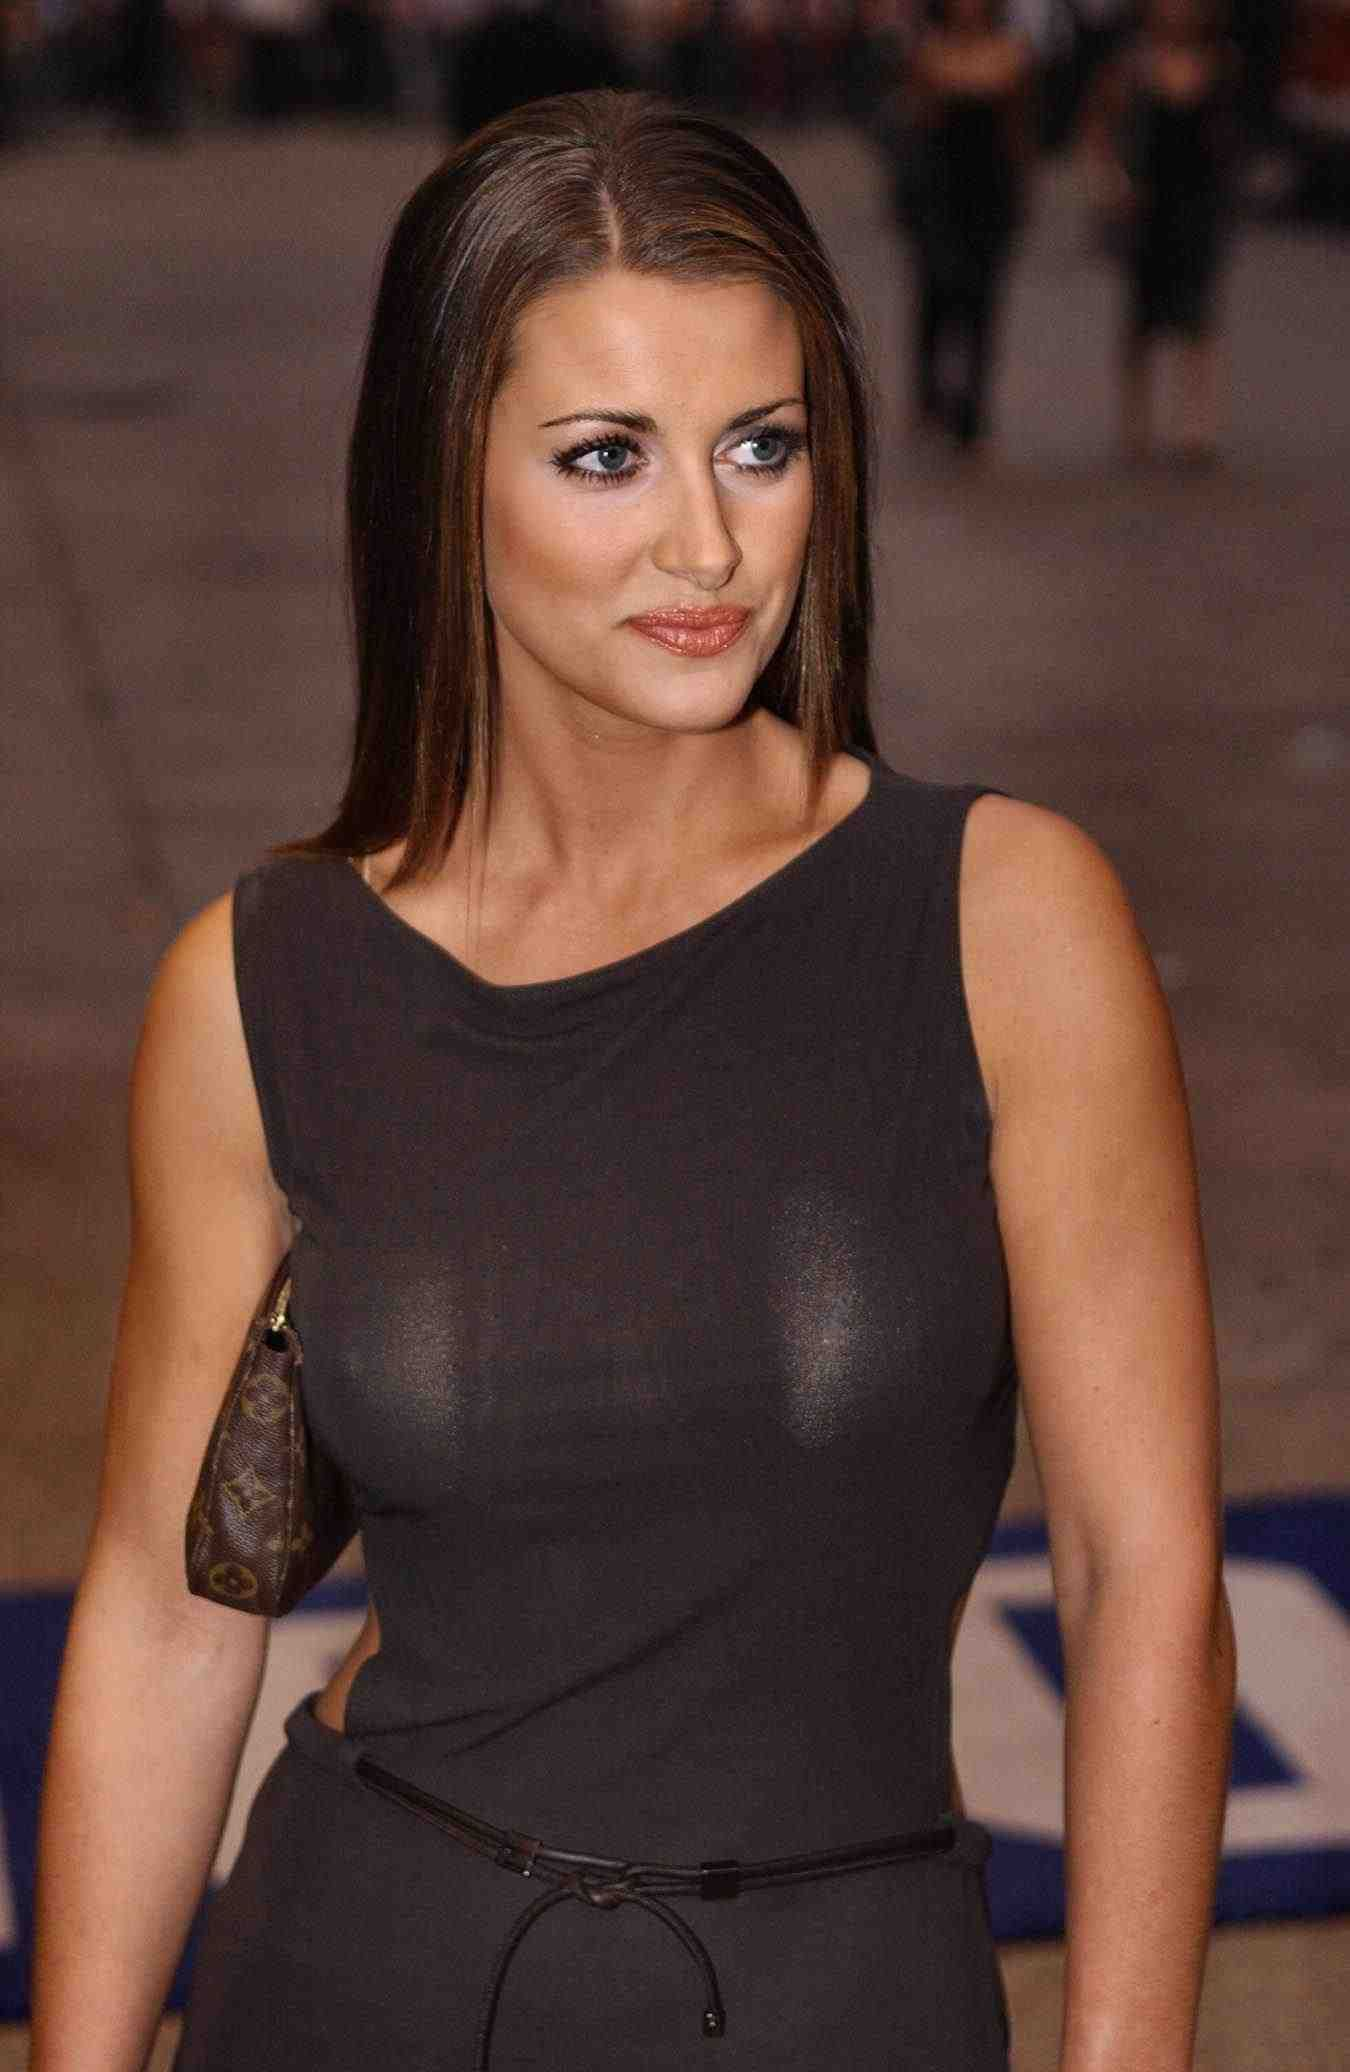 Instagram Kirsty Gallacher naked (15 foto and video), Tits, Hot, Boobs, panties 2019